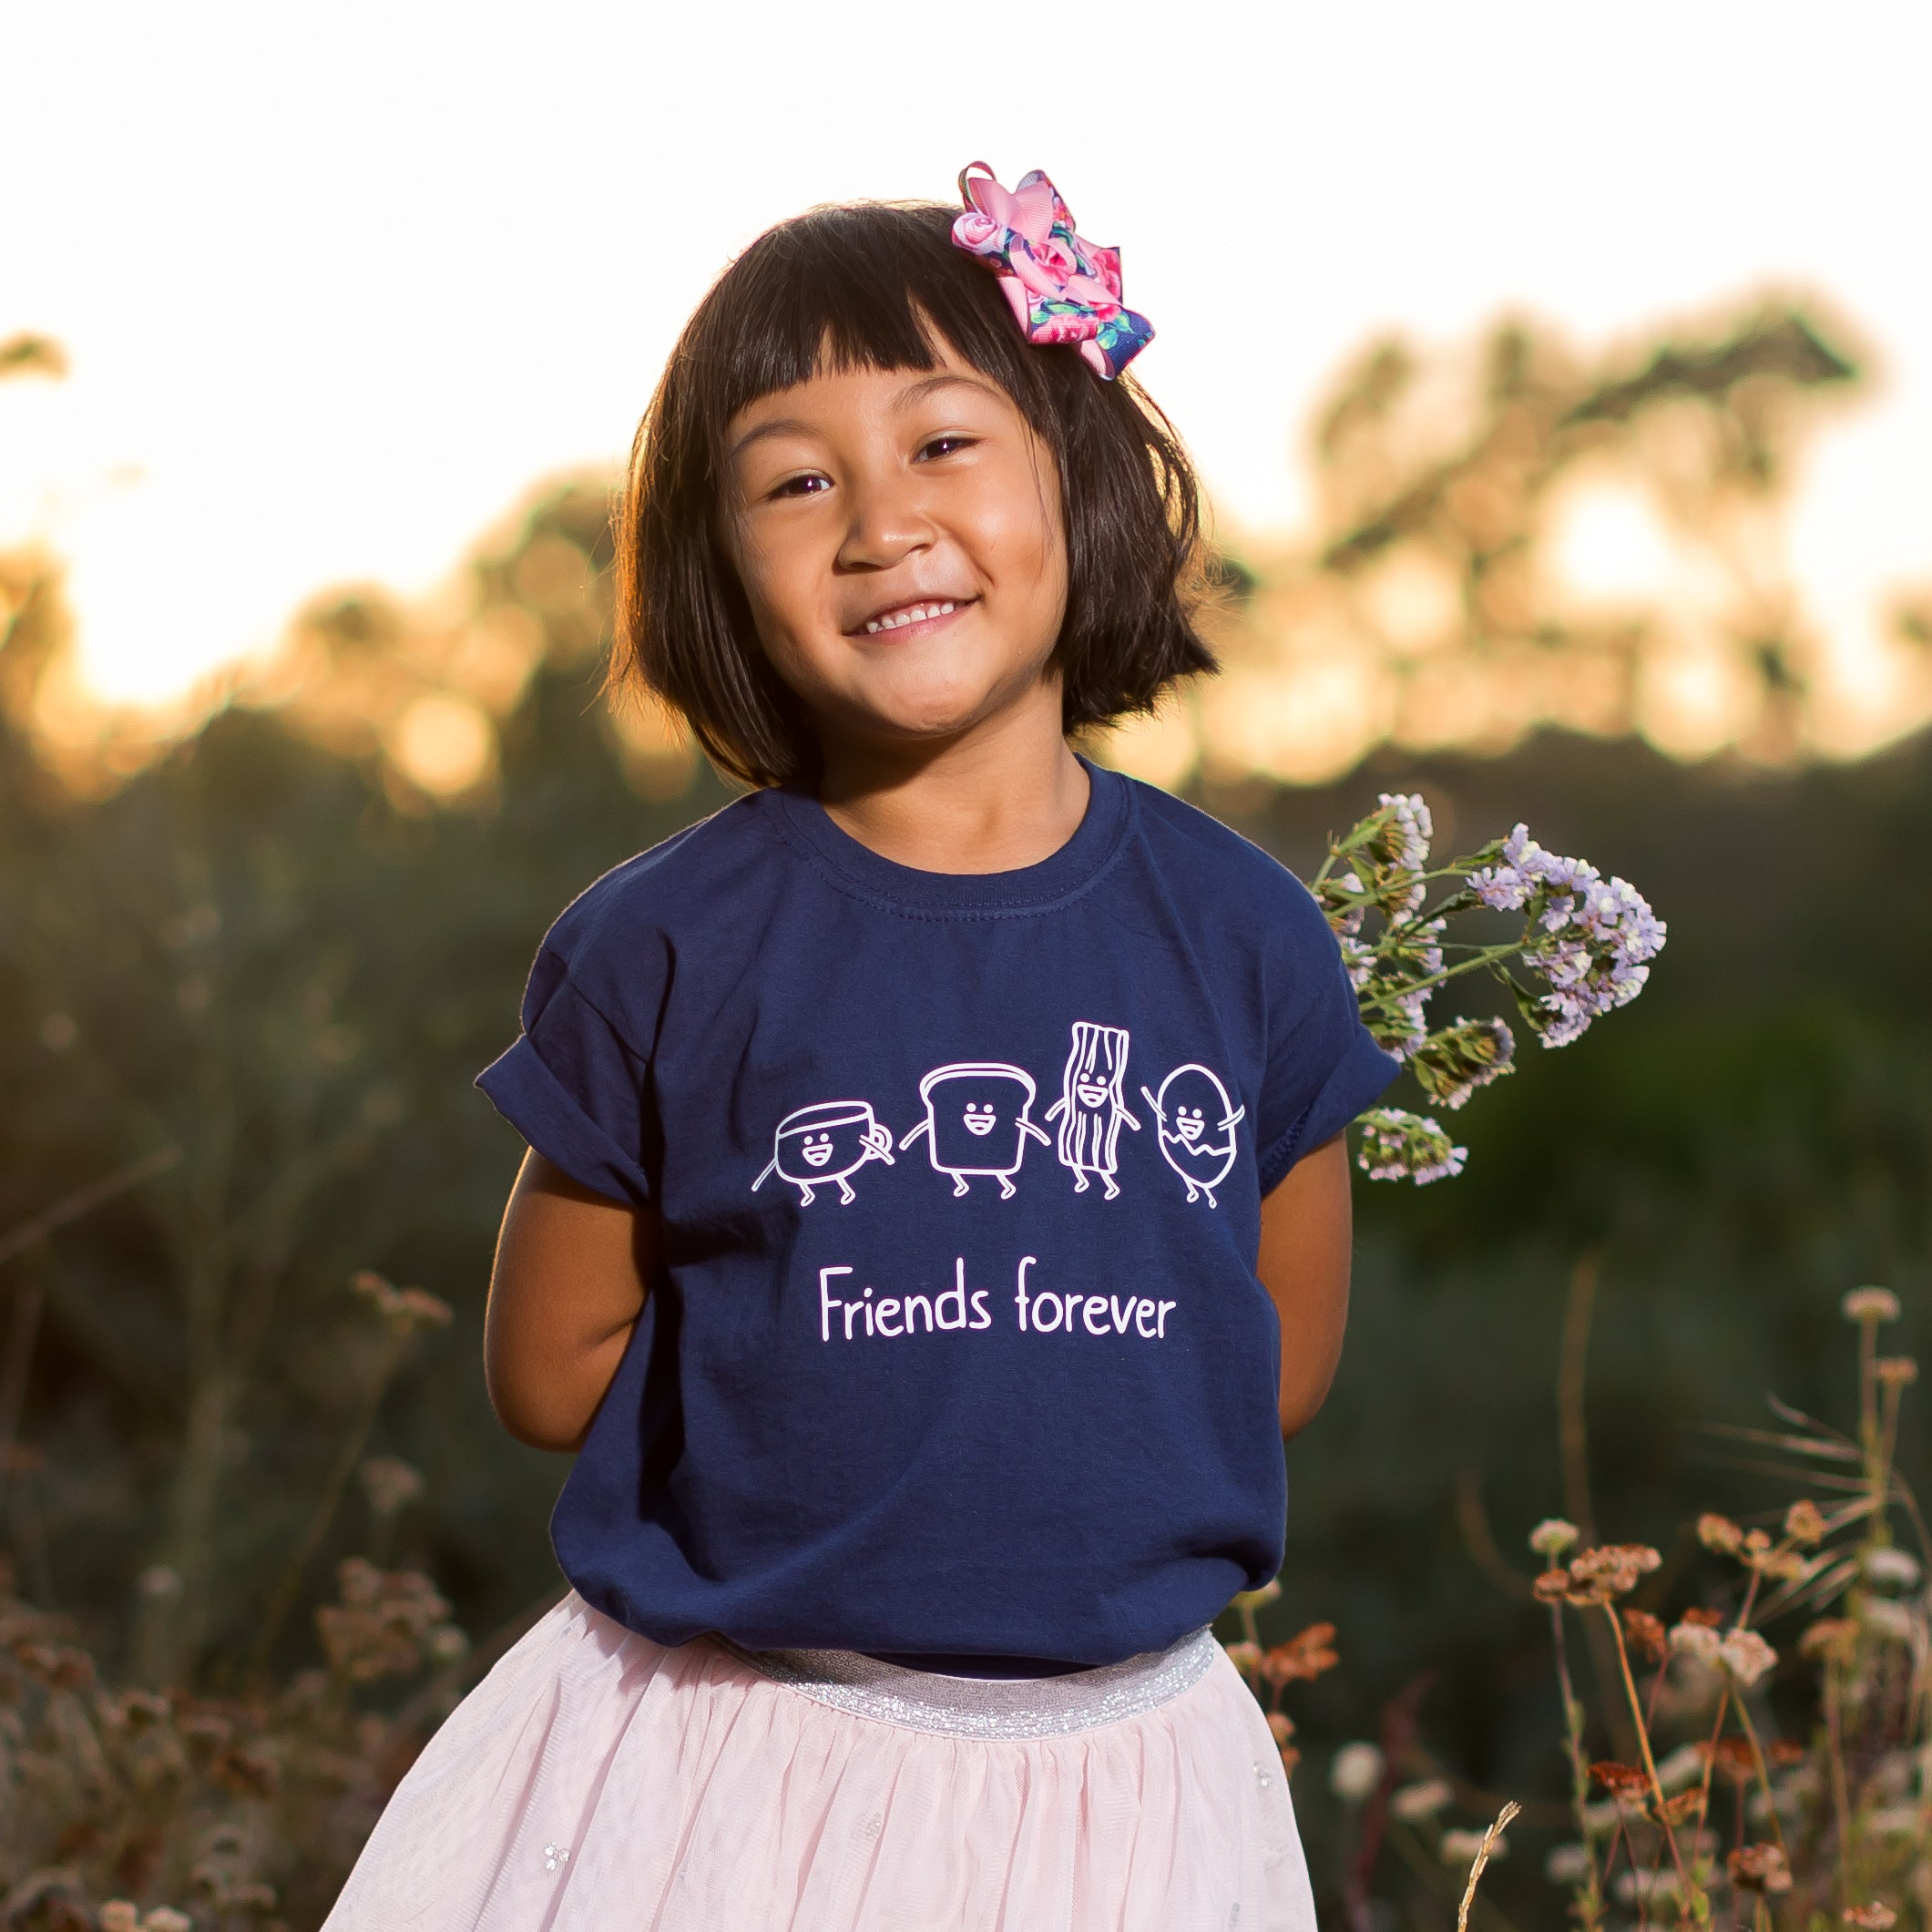 'Friends forever' kids shortsleeve shirt